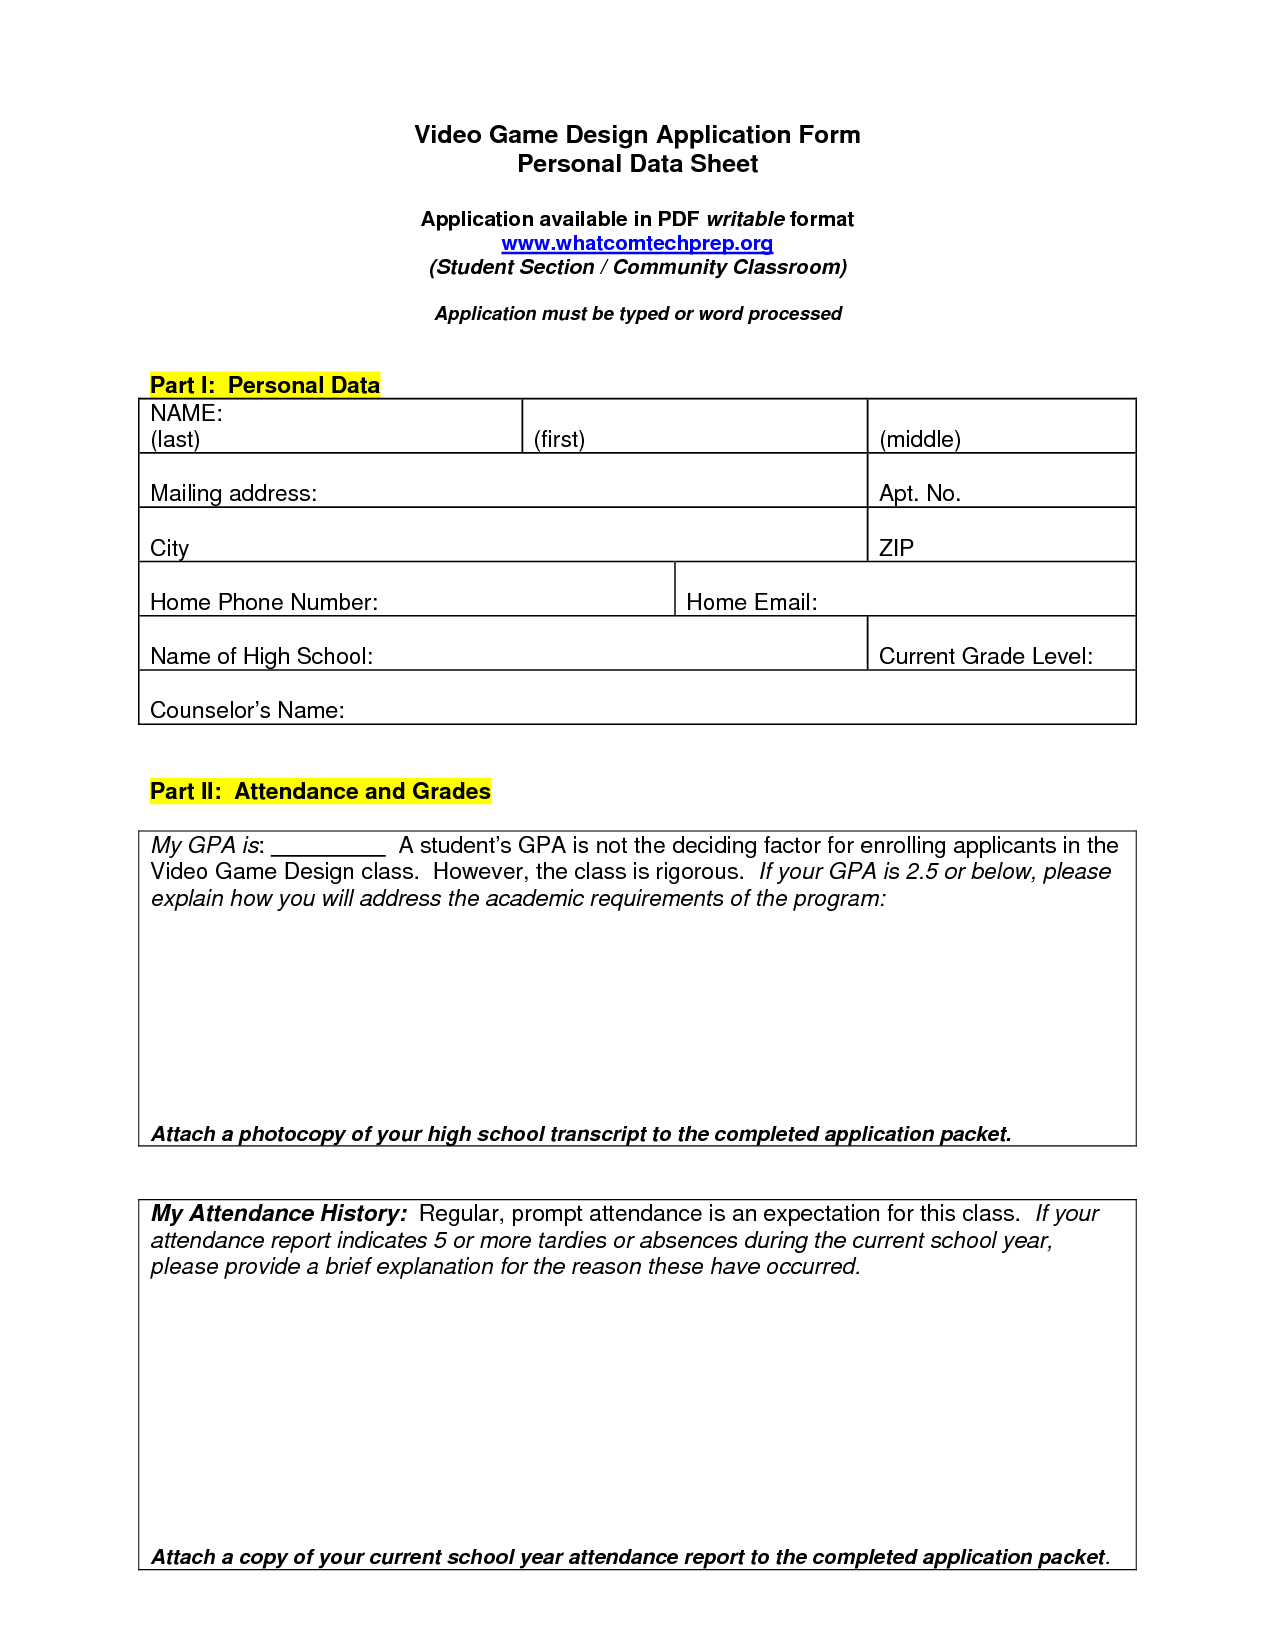 Game Designer Job Application Form  Google Search  Job